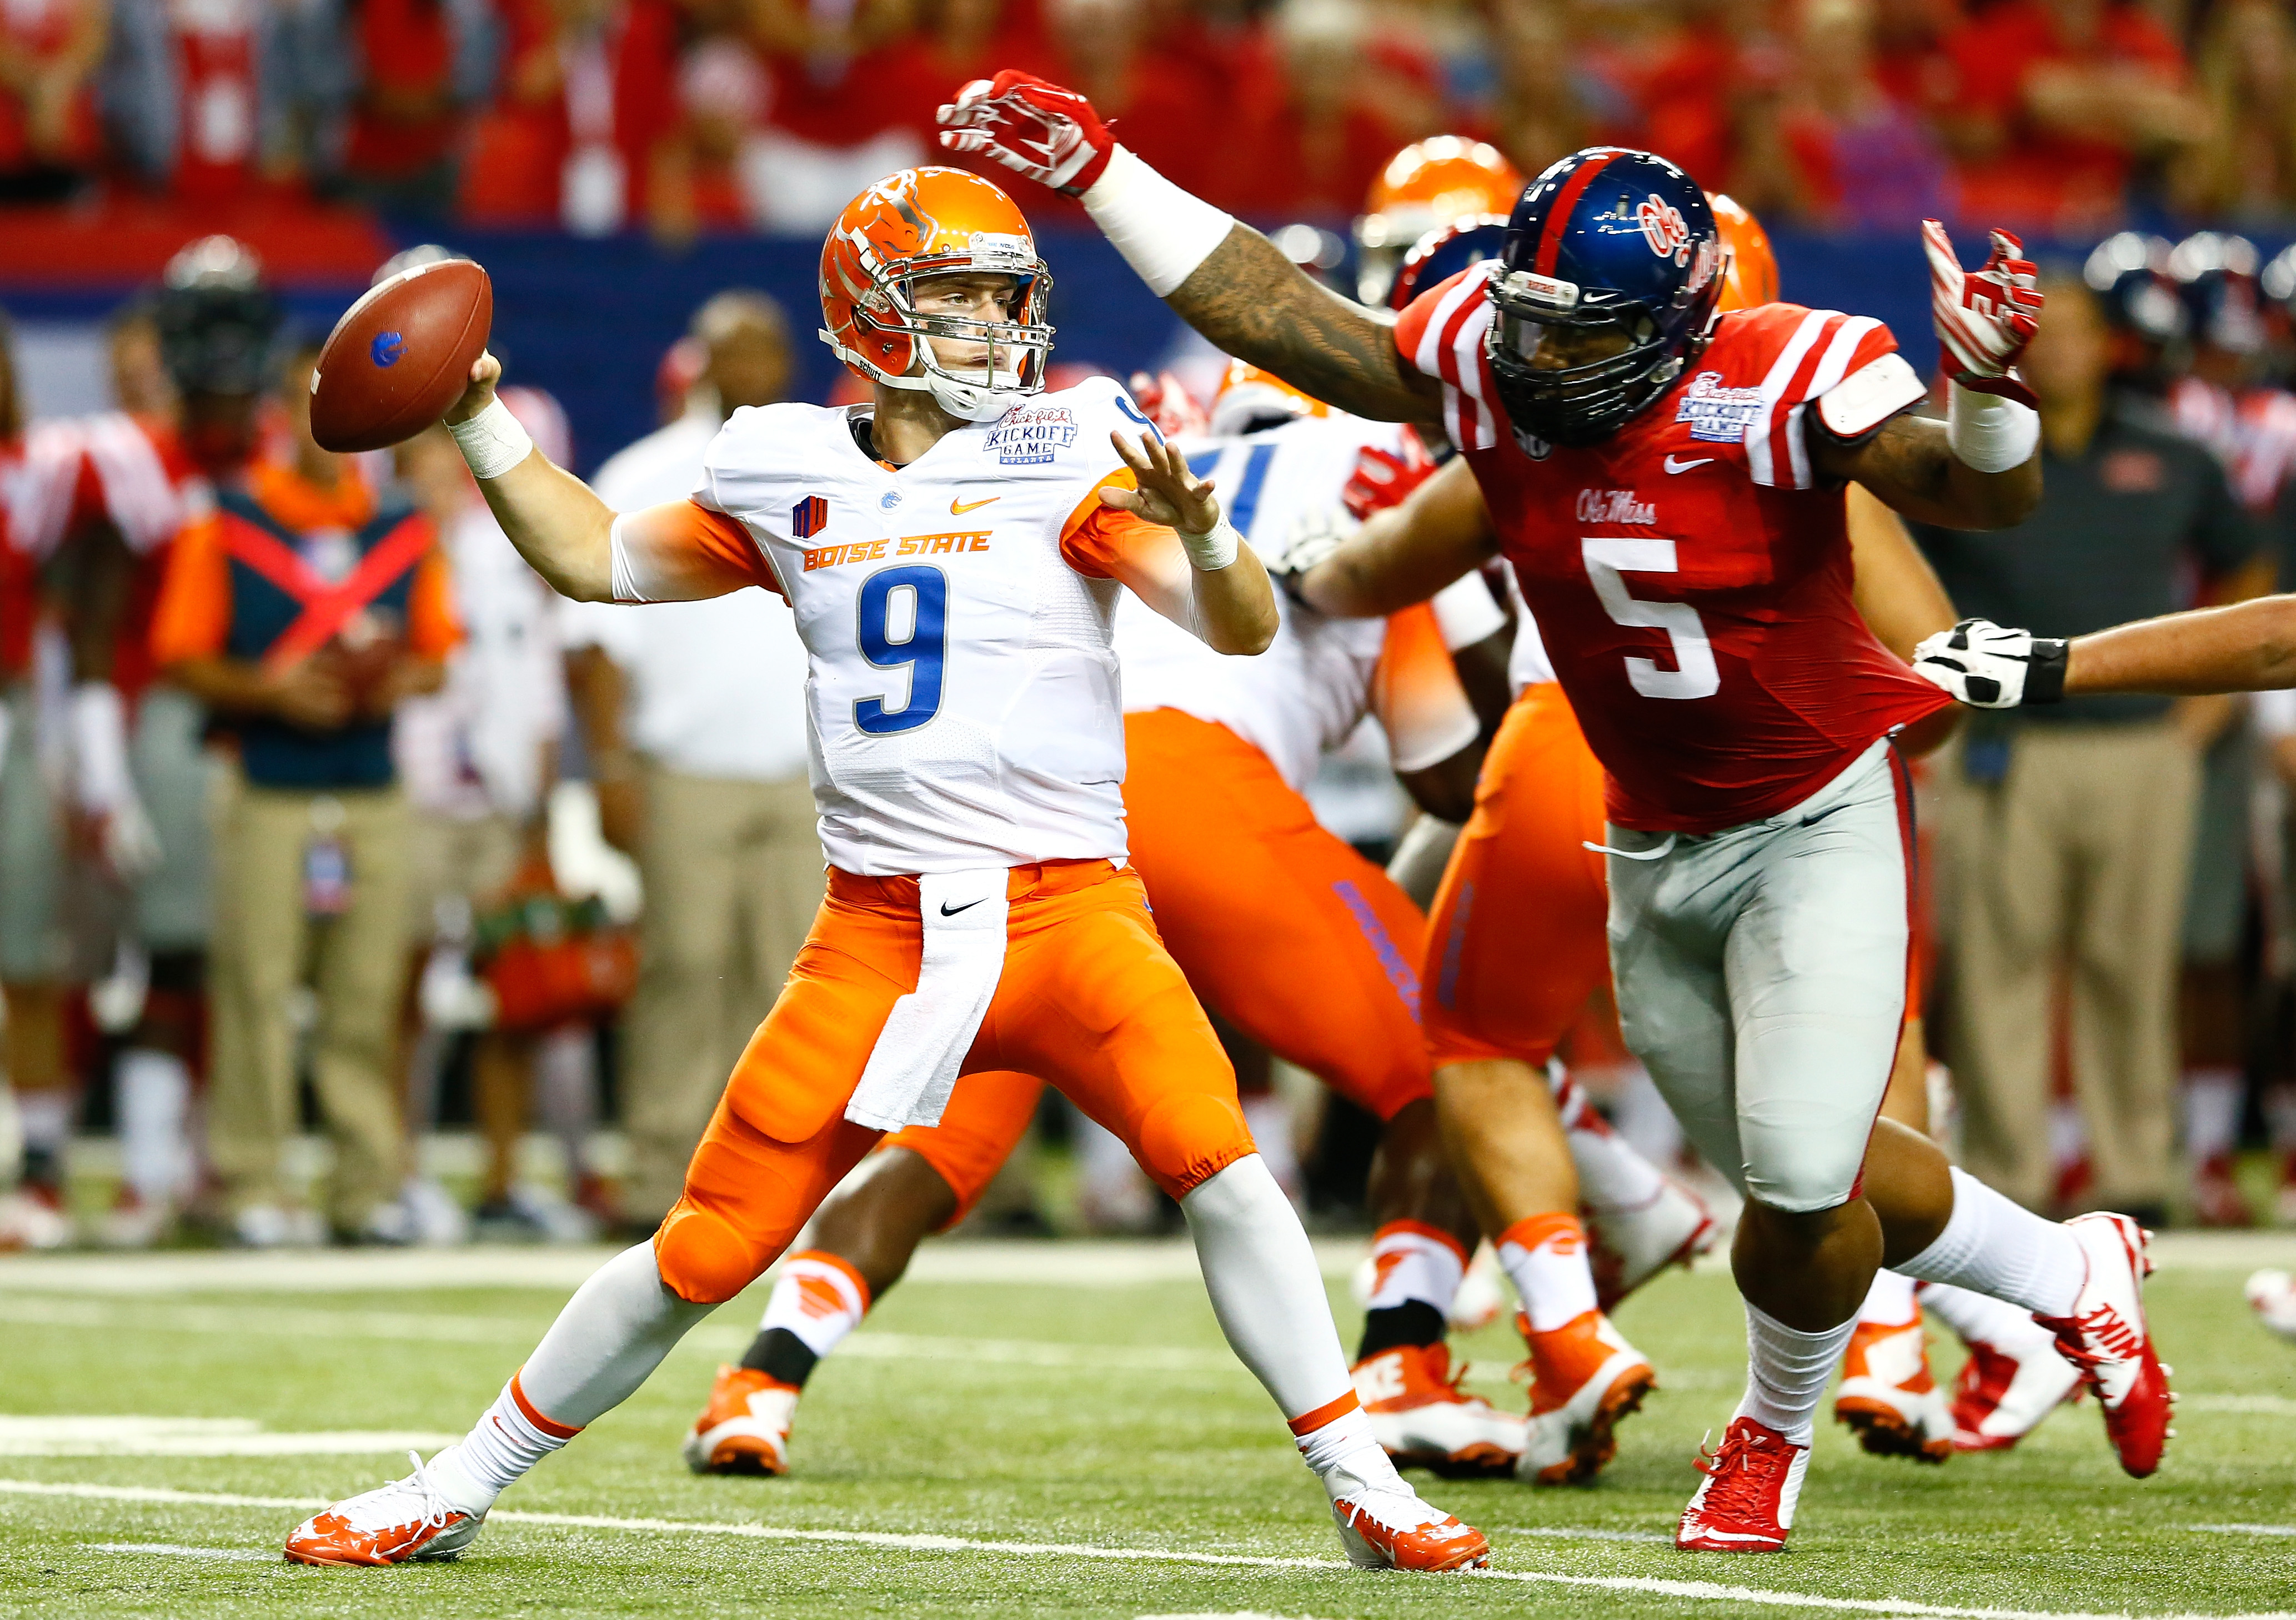 ATLANTA, GA - AUGUST 28:  Robert Nkemdiche #5 of the Mississippi Rebels pressures Grant Hedrick #9 of the Boise State Broncos at Georgia Dome on August 28, 2014 in Atlanta, Georgia.  (Photo by Kevin C. Cox/Getty Images)